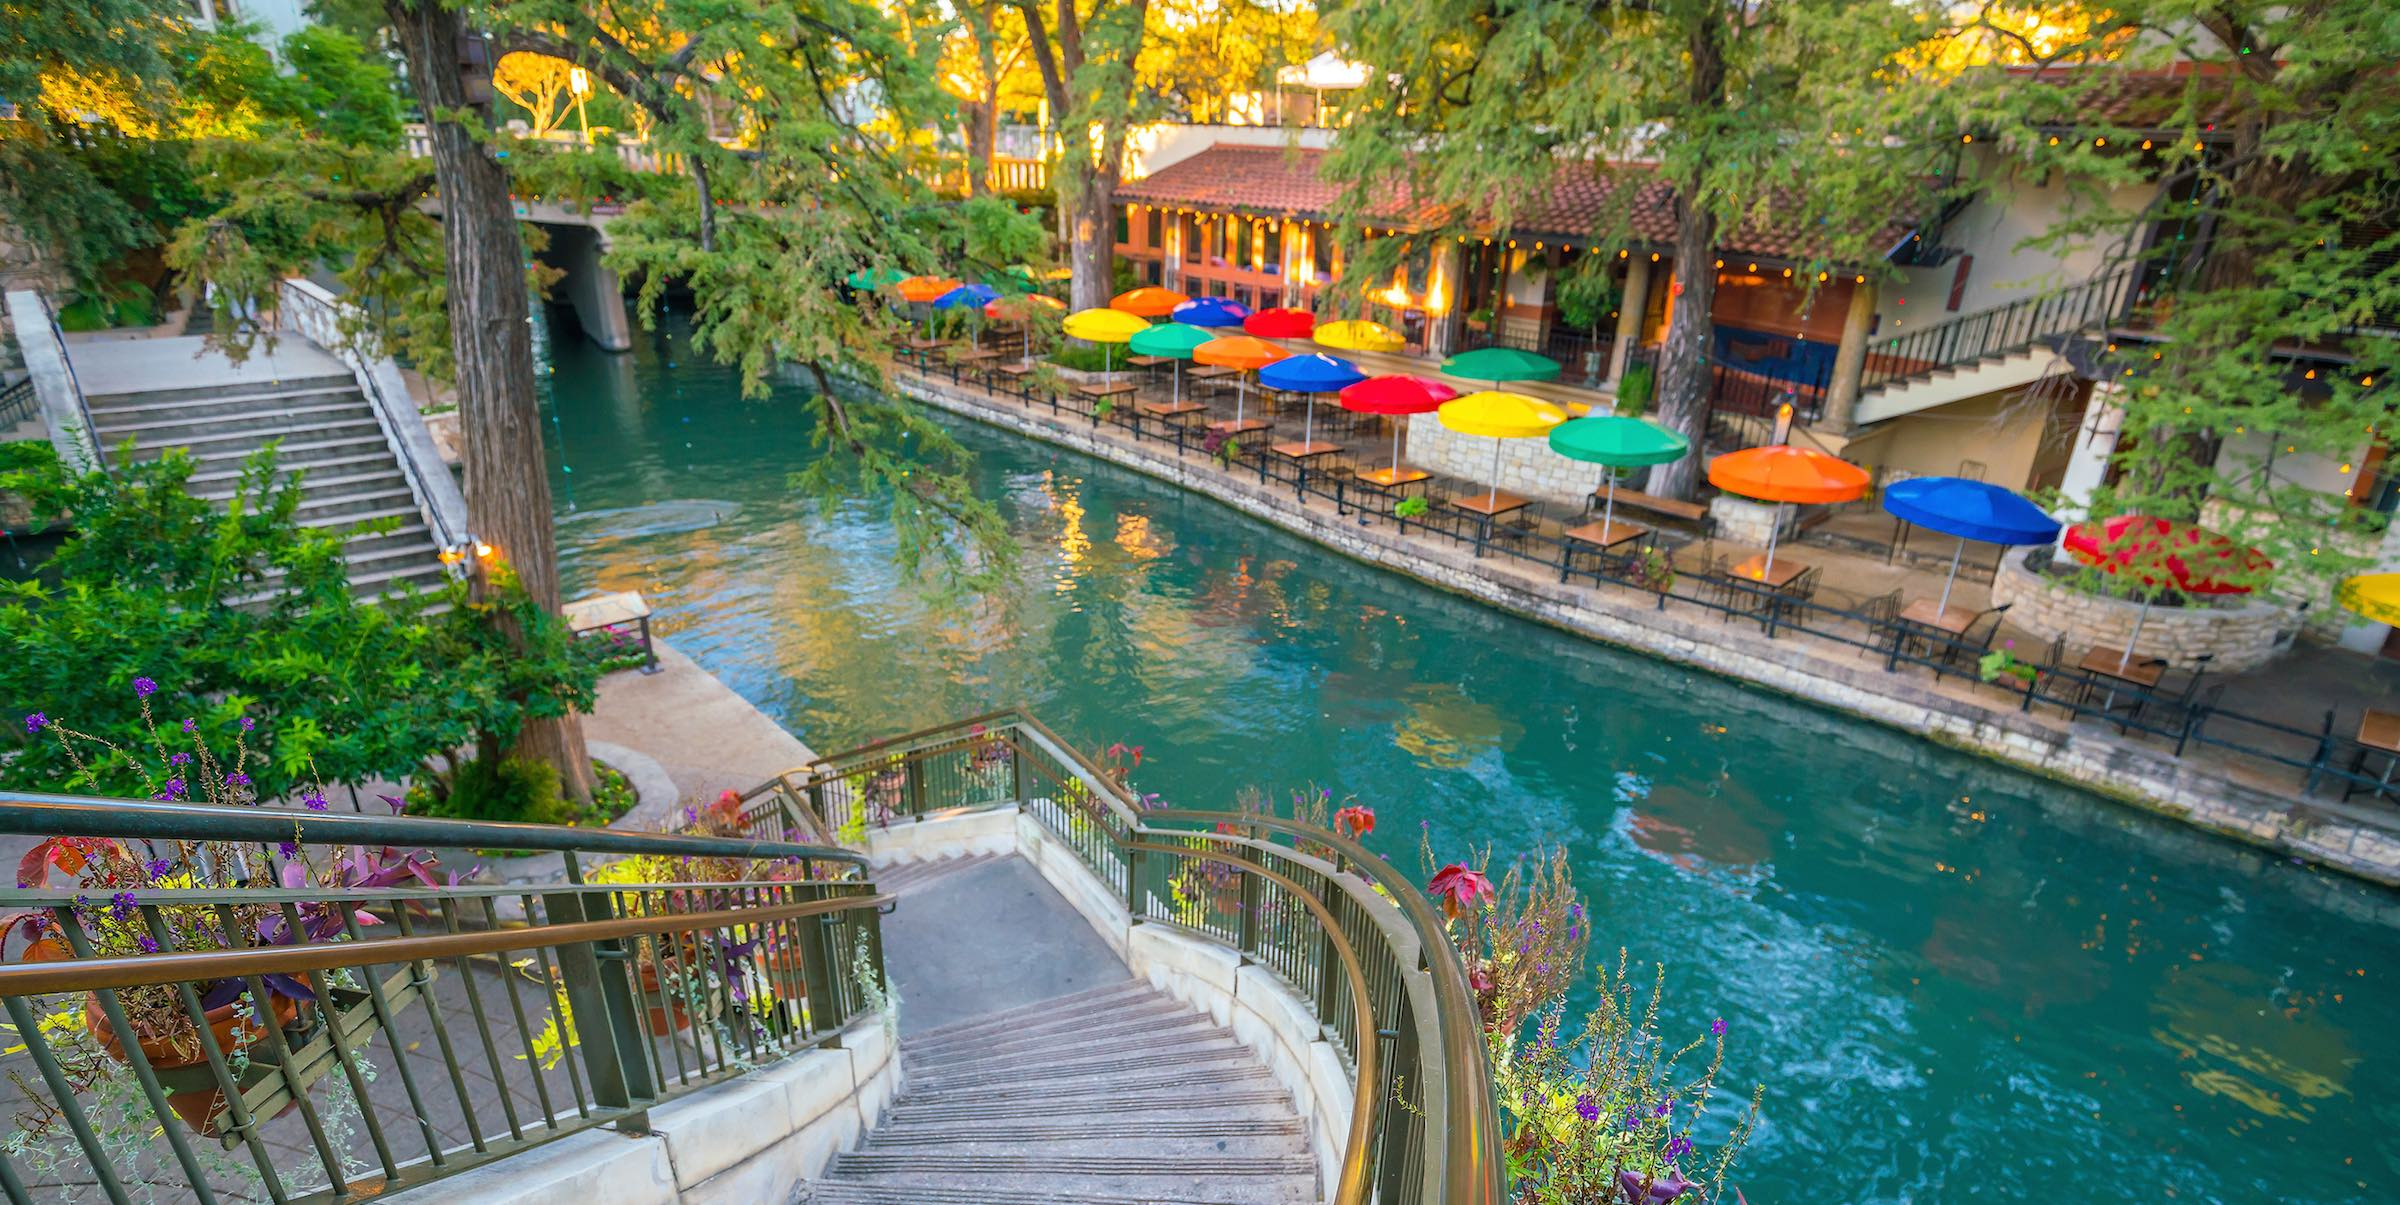 San antonio texas homes for sale free mls search the for Lambs canyon cabins for sale